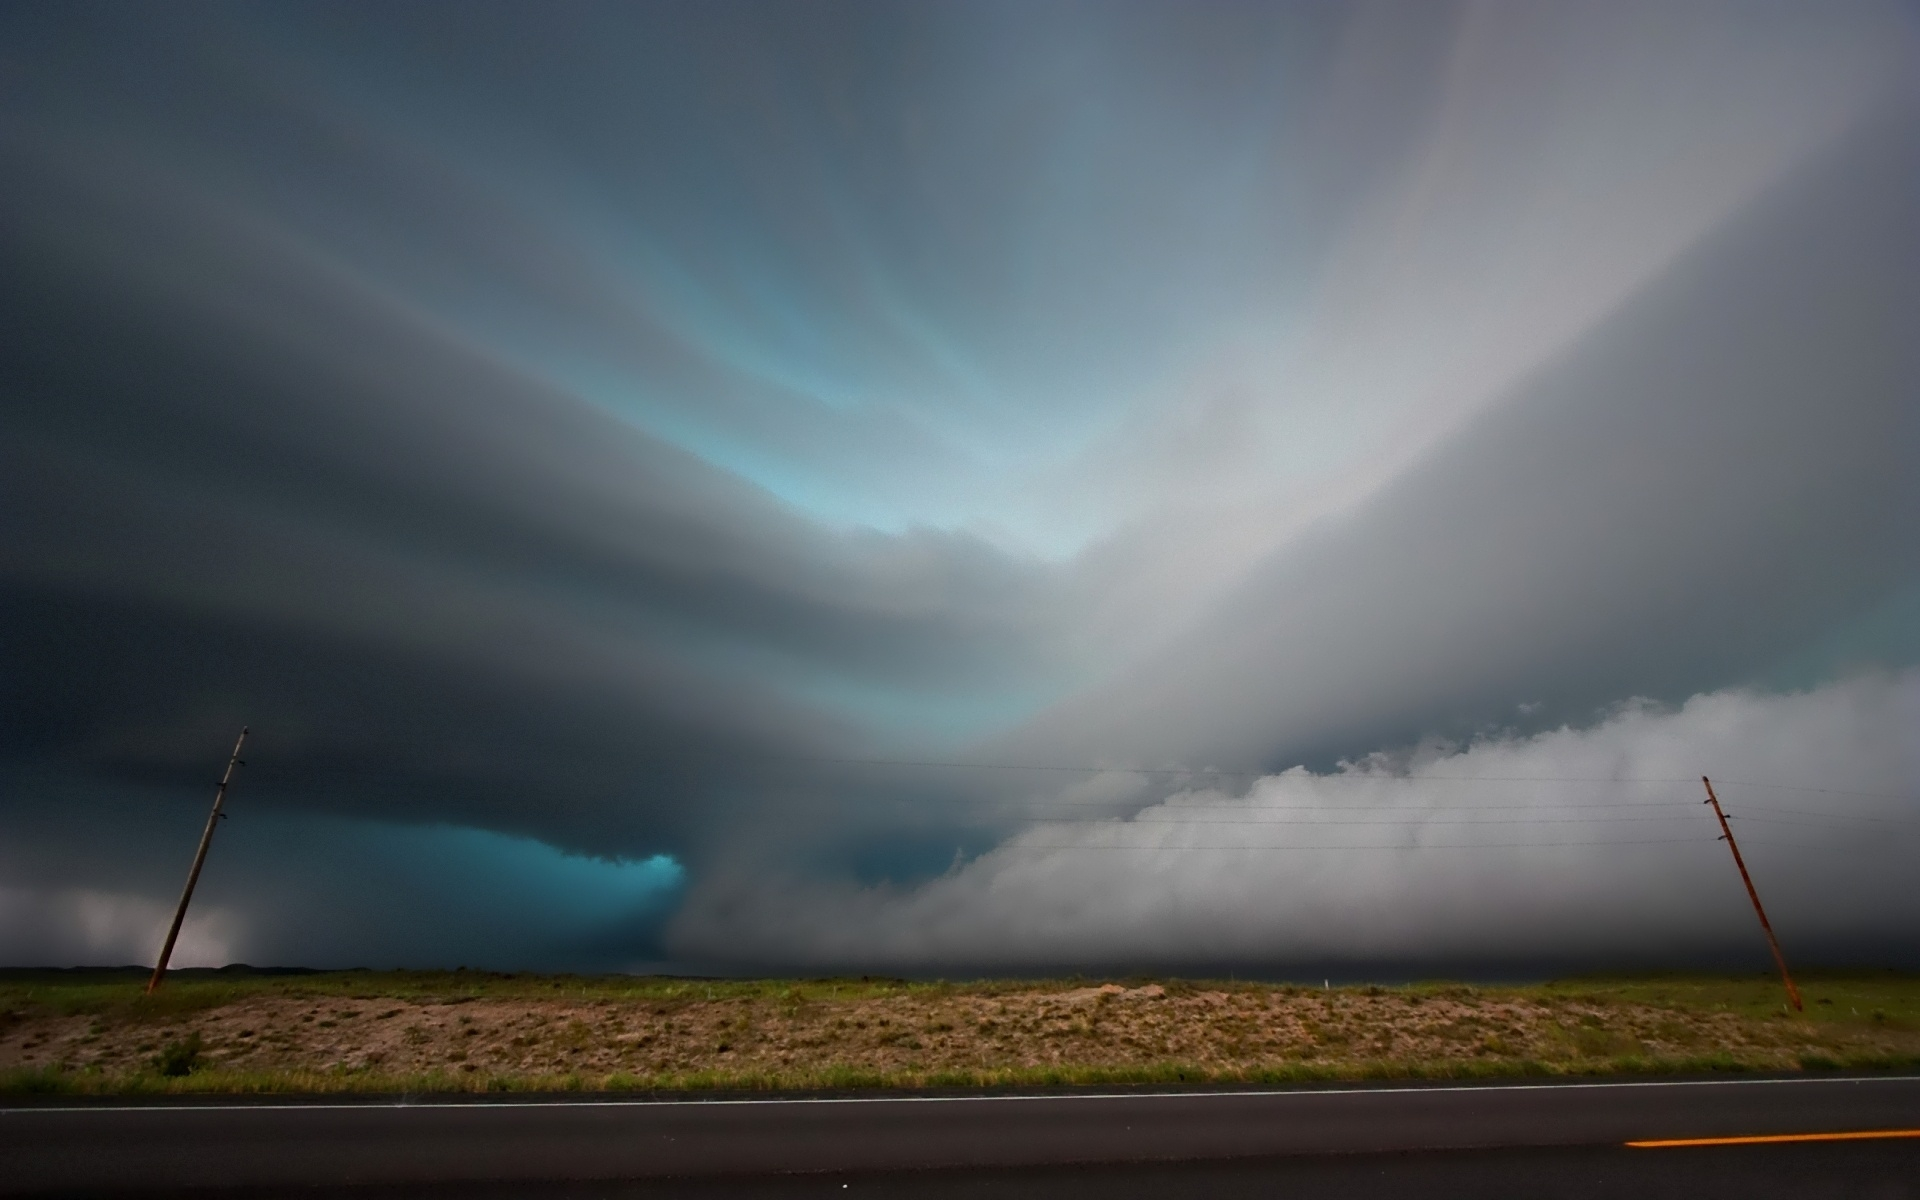 Hd Thunderstorm Wallpapers: Storm Wallpapers, Pictures, Images